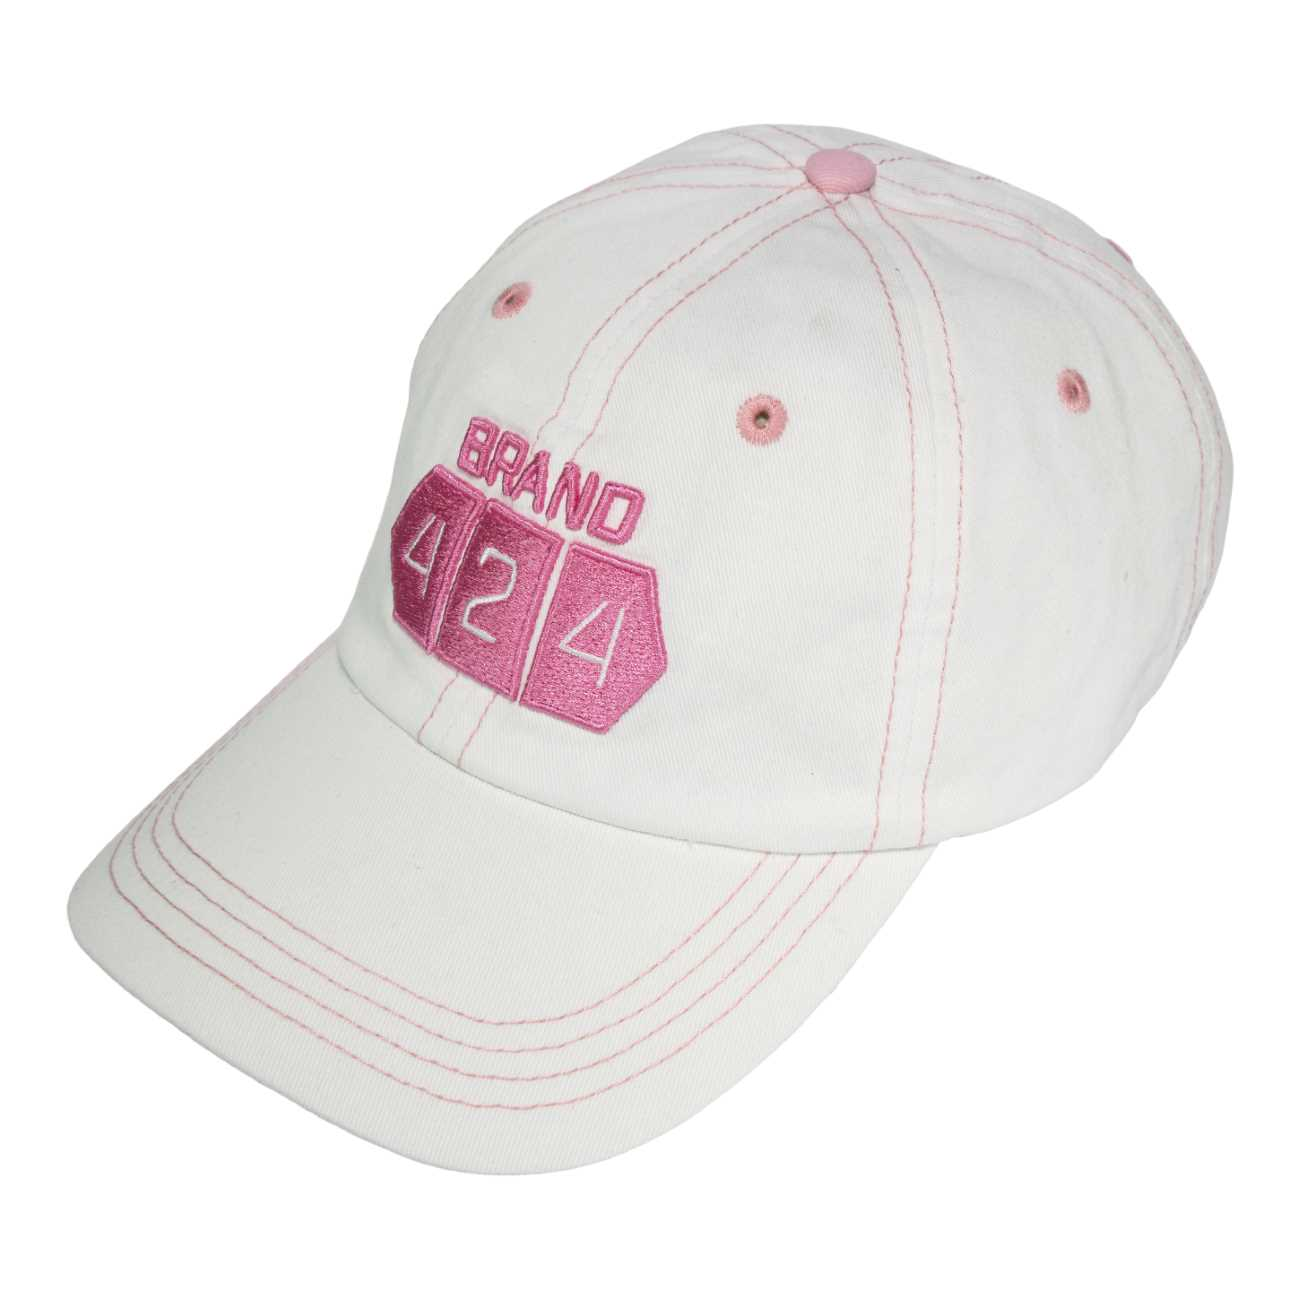 Brand424 - Pink Dads Cap